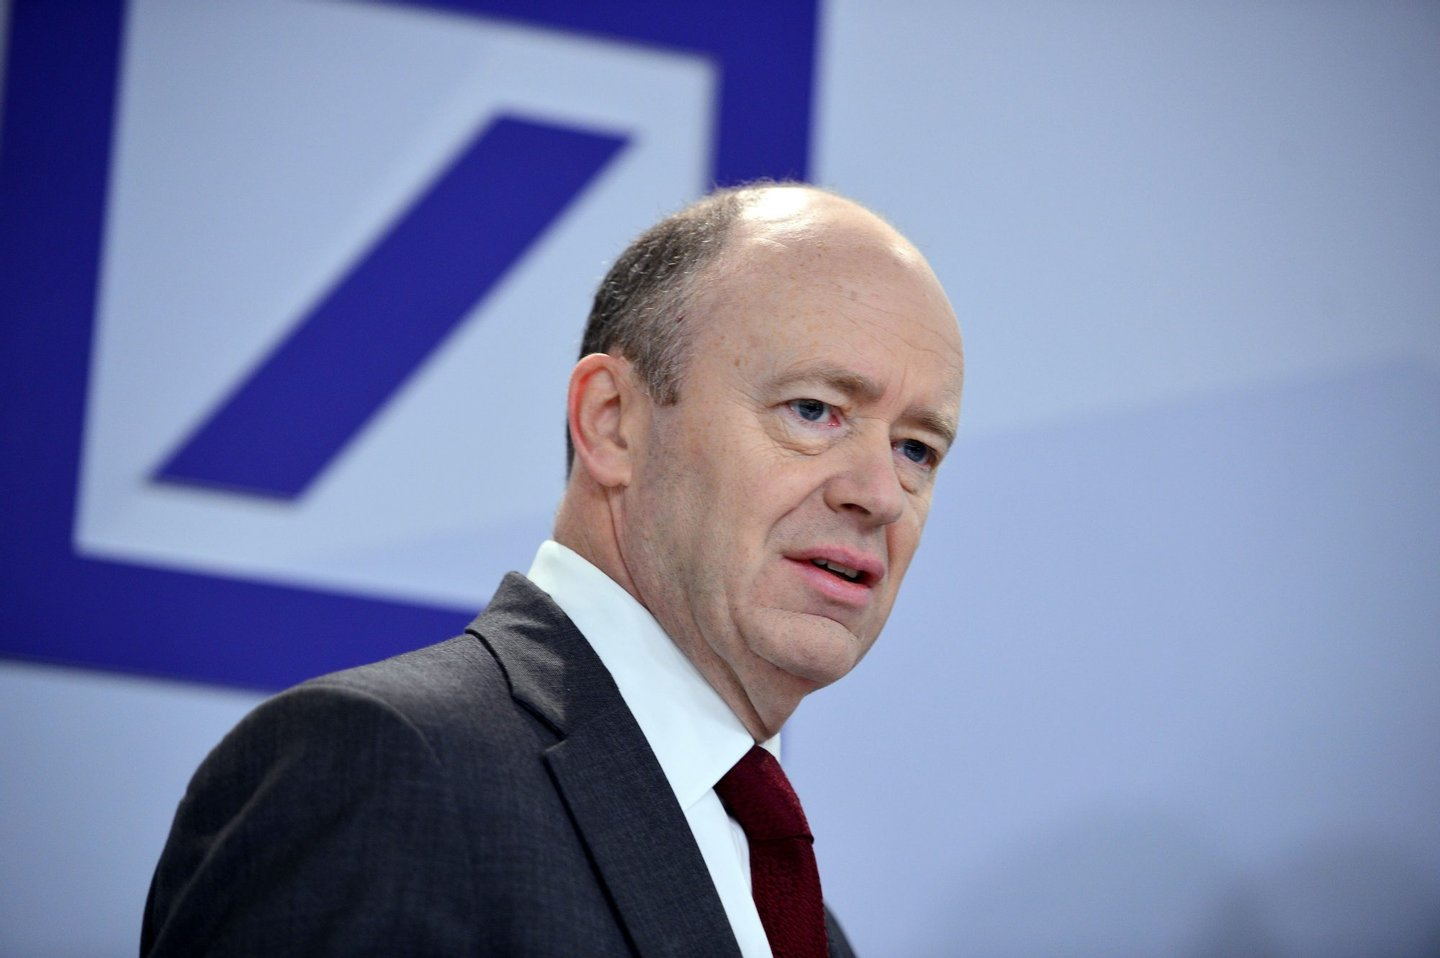 FRANKFURT AM MAIN, GERMANY - OCTOBER 29: Deutsche Bank co-Chairman John Cryan arrives to speak to the media at Deutsche Bank headquarters on October 29, 2015 in Frankfurt, Germany. This is Cryan's first press conference since he replaced former co-Chairman Anshu Jain earlier this year. (Photo by Thomas Lohnes/Getty Images)